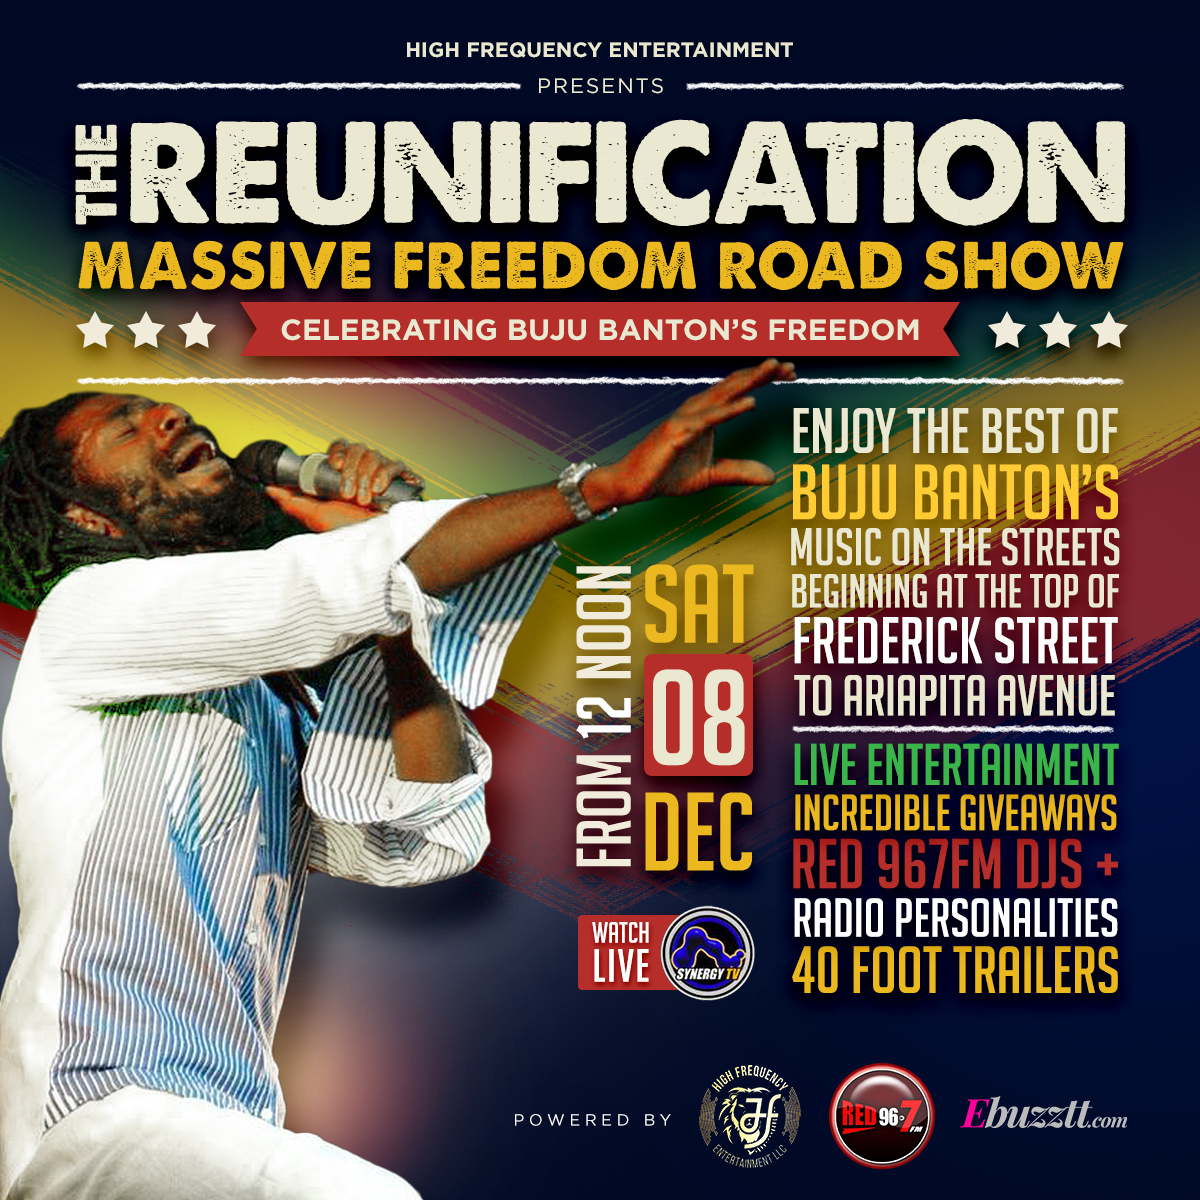 The Reunification Road Show